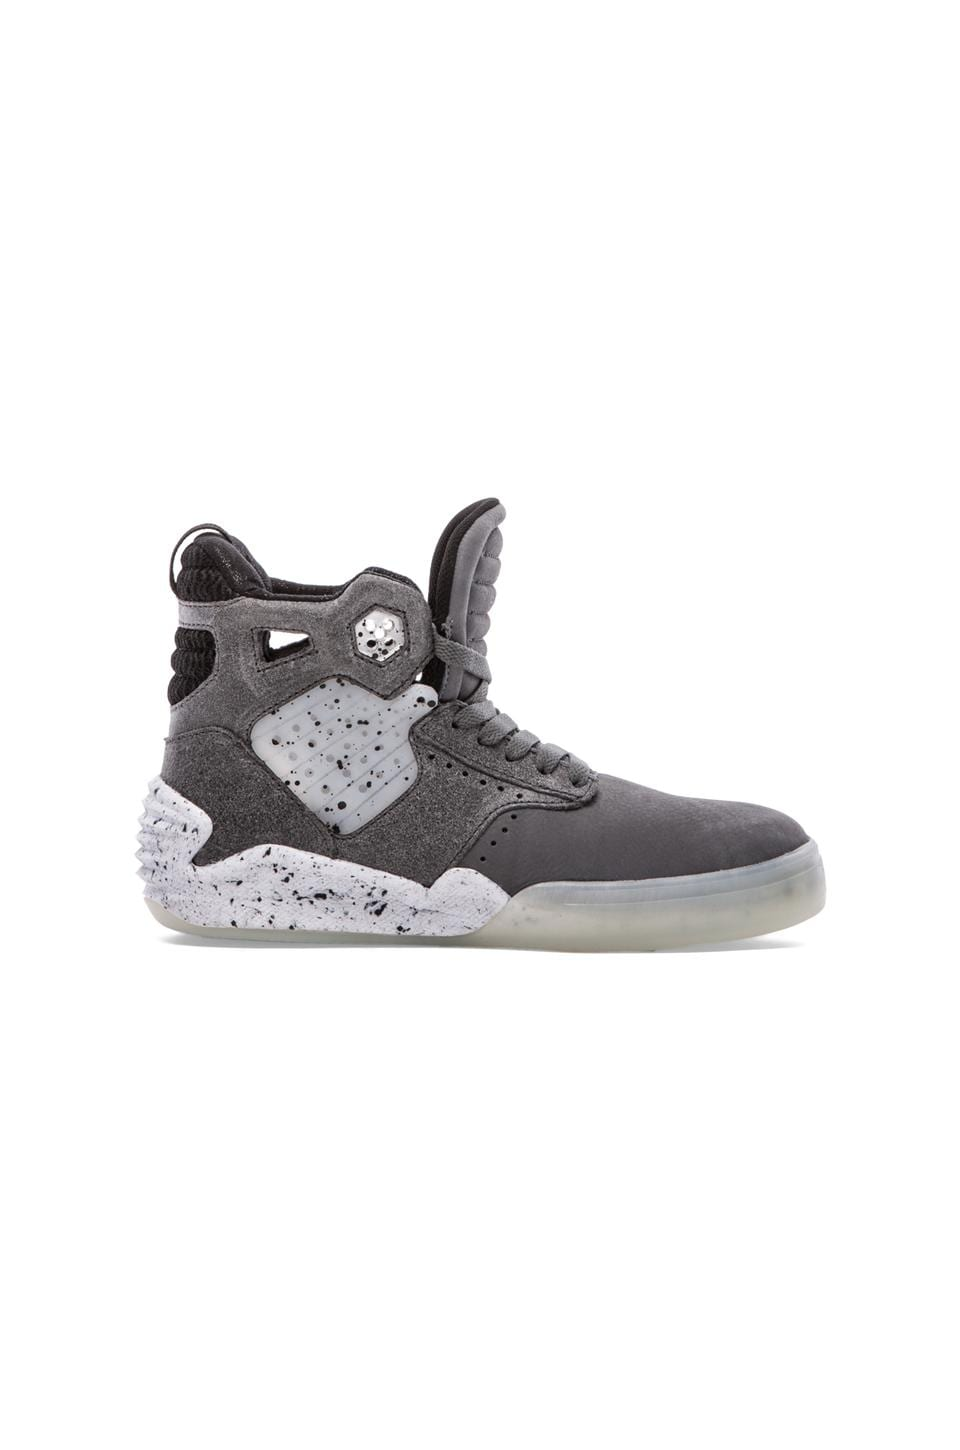 Supra Skytop IV in Charcoal